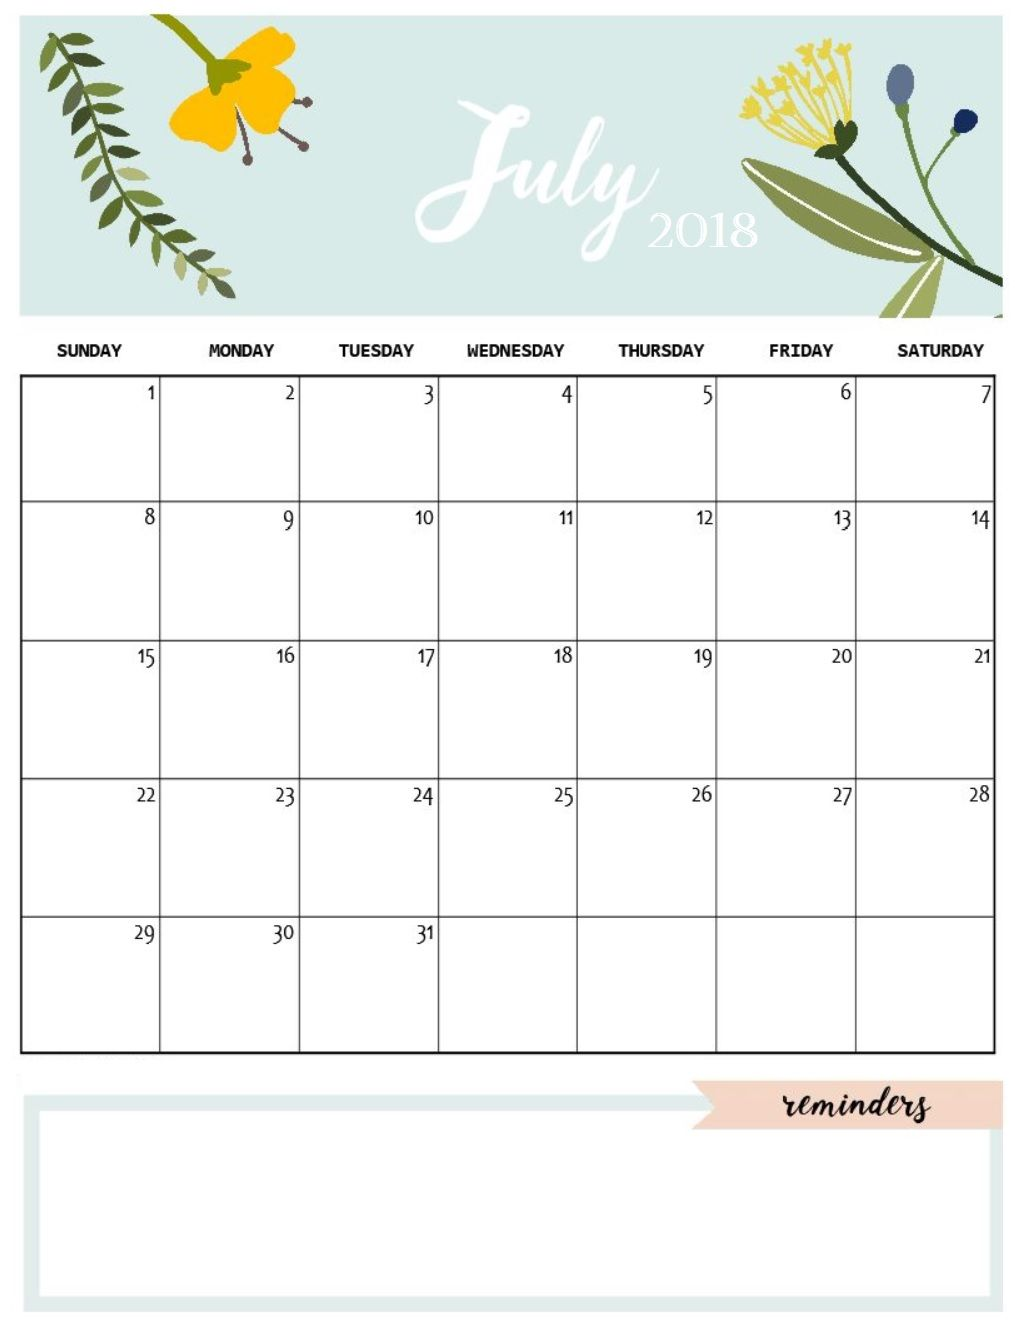 July 2018 Cute Calendar Latest Calendar Pinterest Calendar